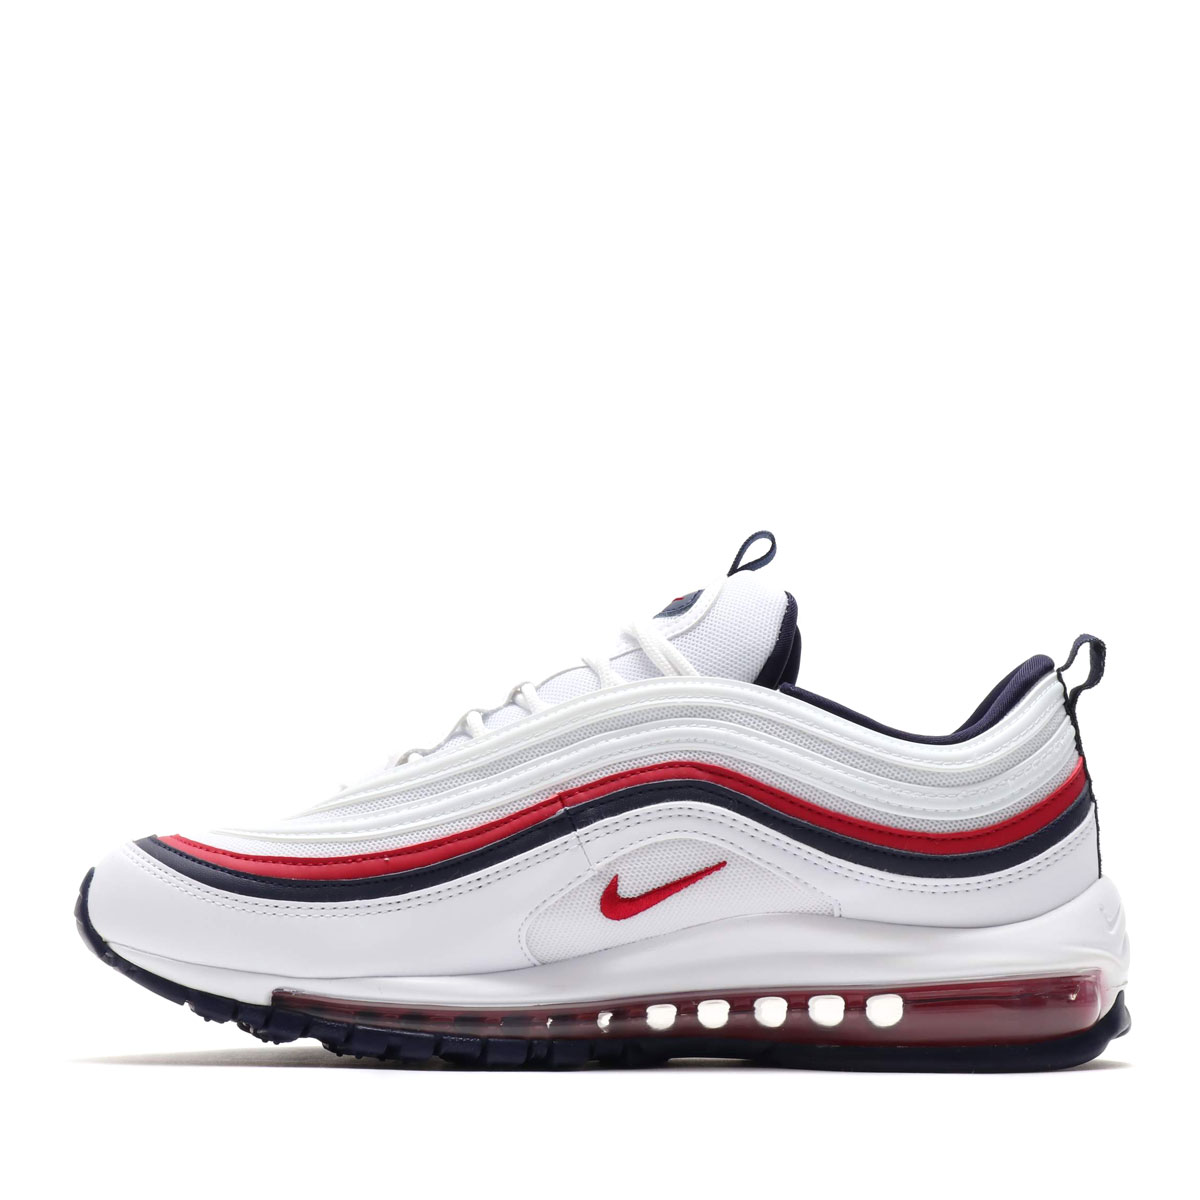 sale retailer a6195 297ae ... NIKE W AIR MAX 97 (Nike women Air Max 97) WHITE RED CRUSH ...